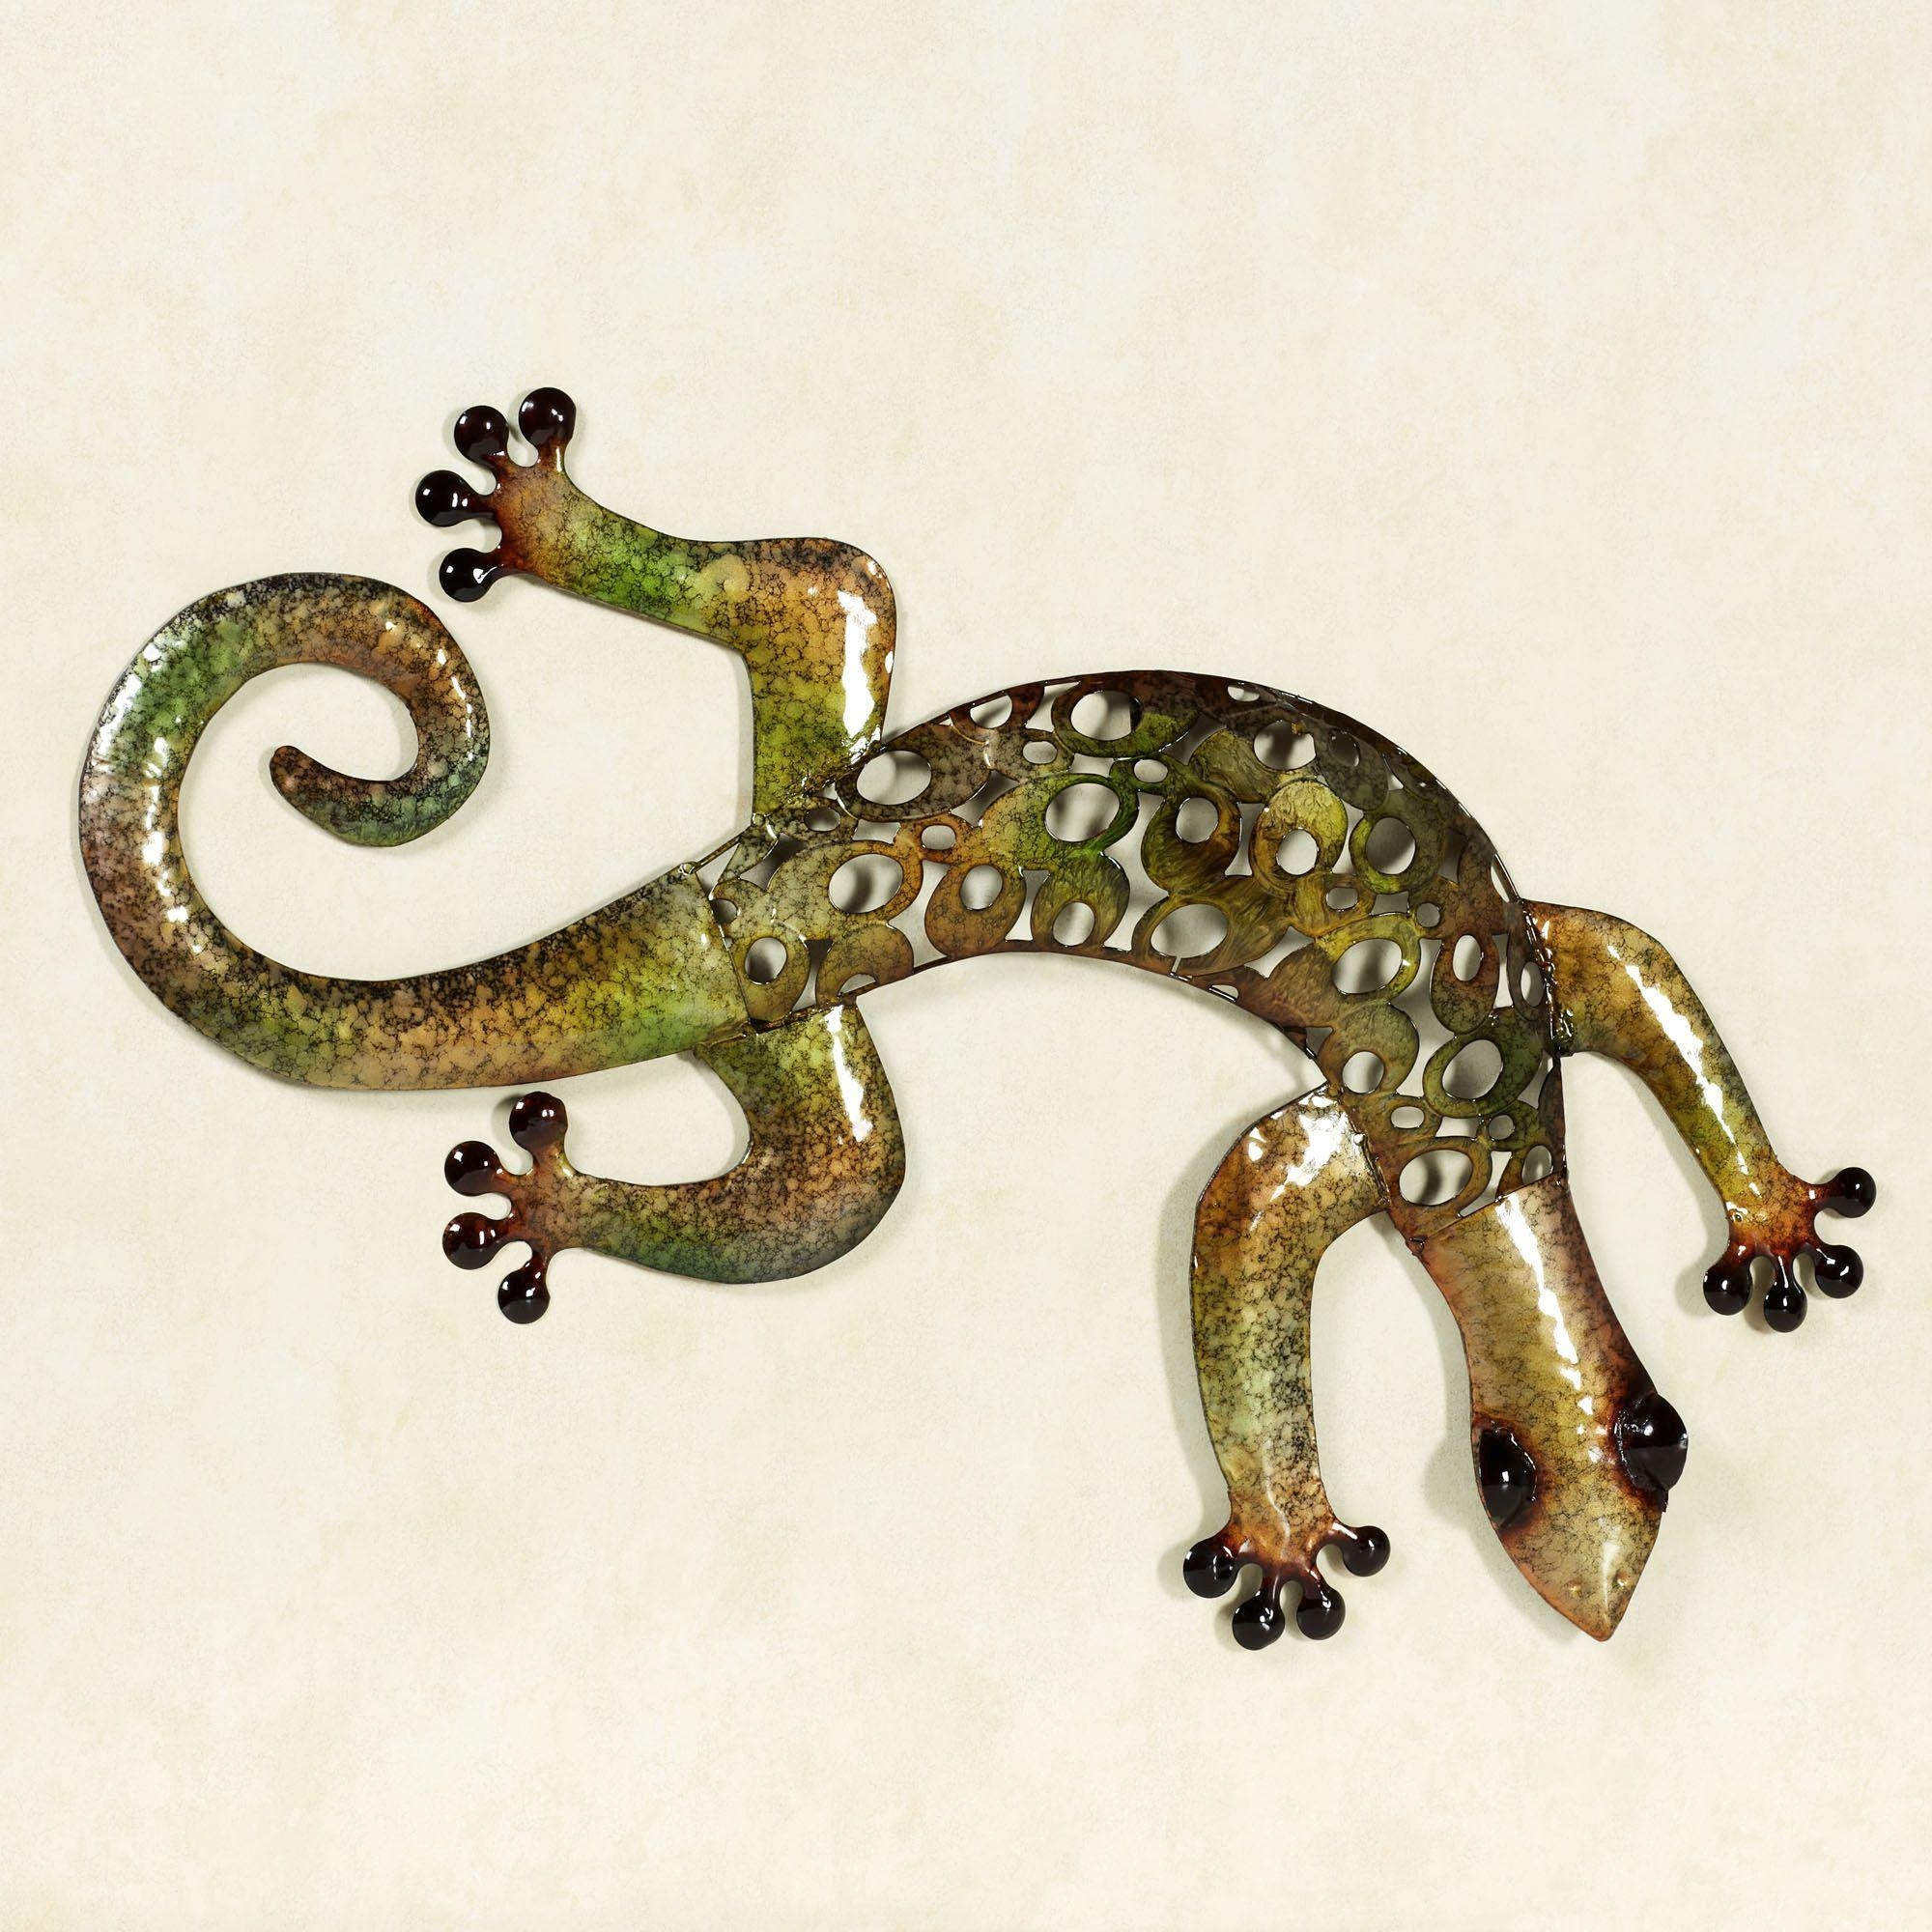 Gecko Wall Art Stunning 20 Photos Gecko Outdoor Wall Art  Wall Art Ideas Inspiration